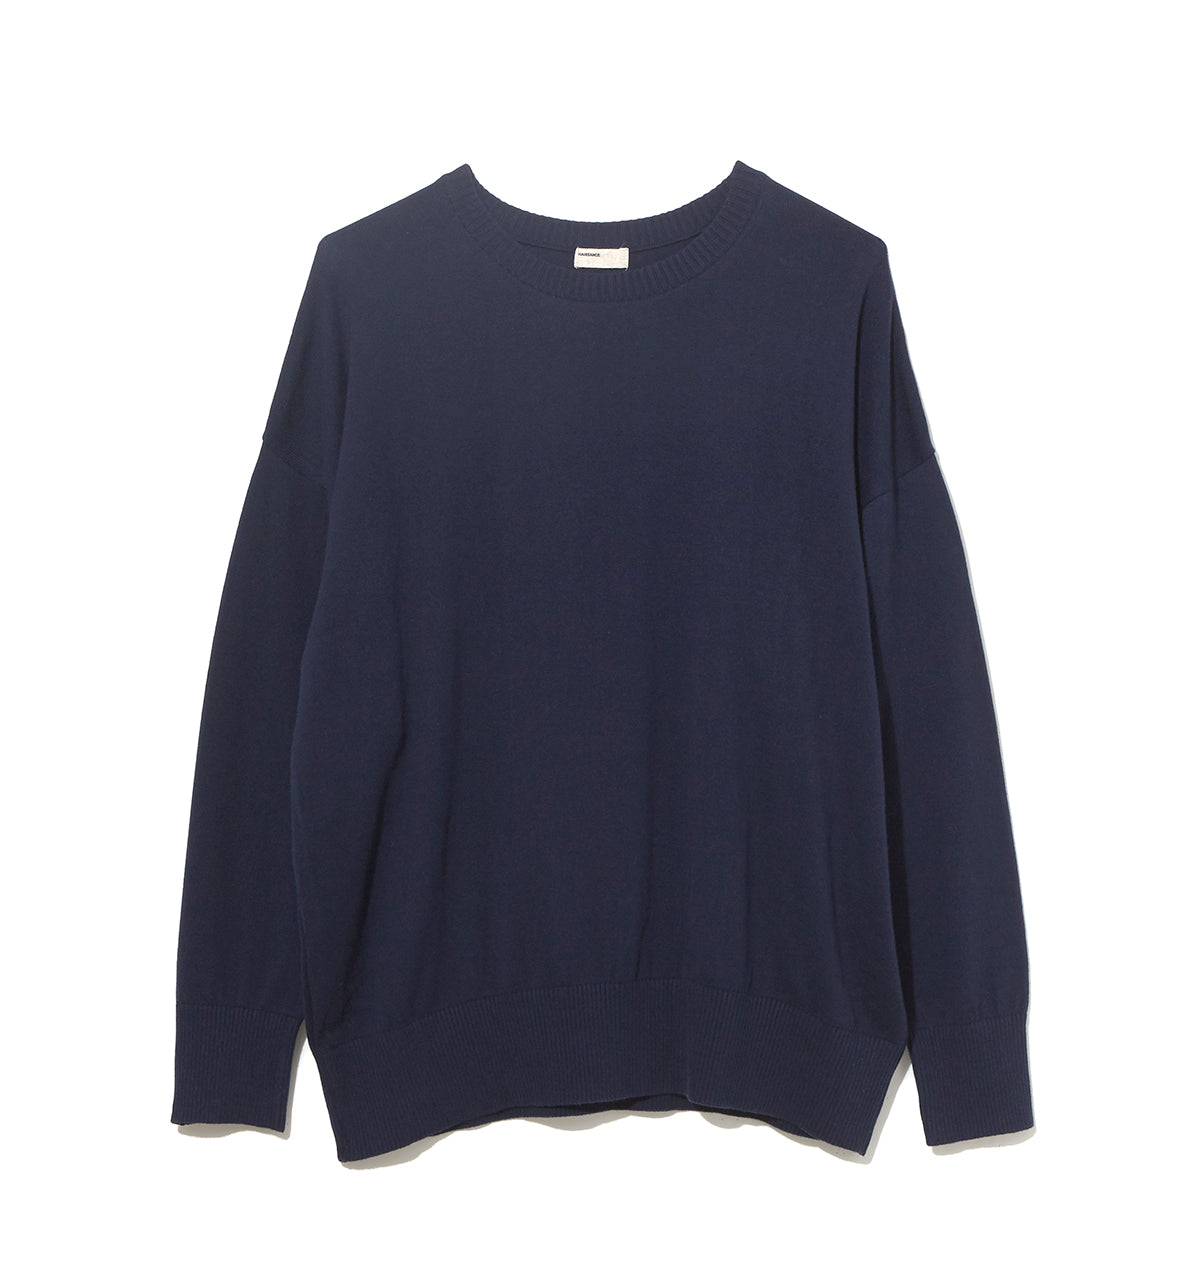 Cotton Cashmere Knit / NAVY